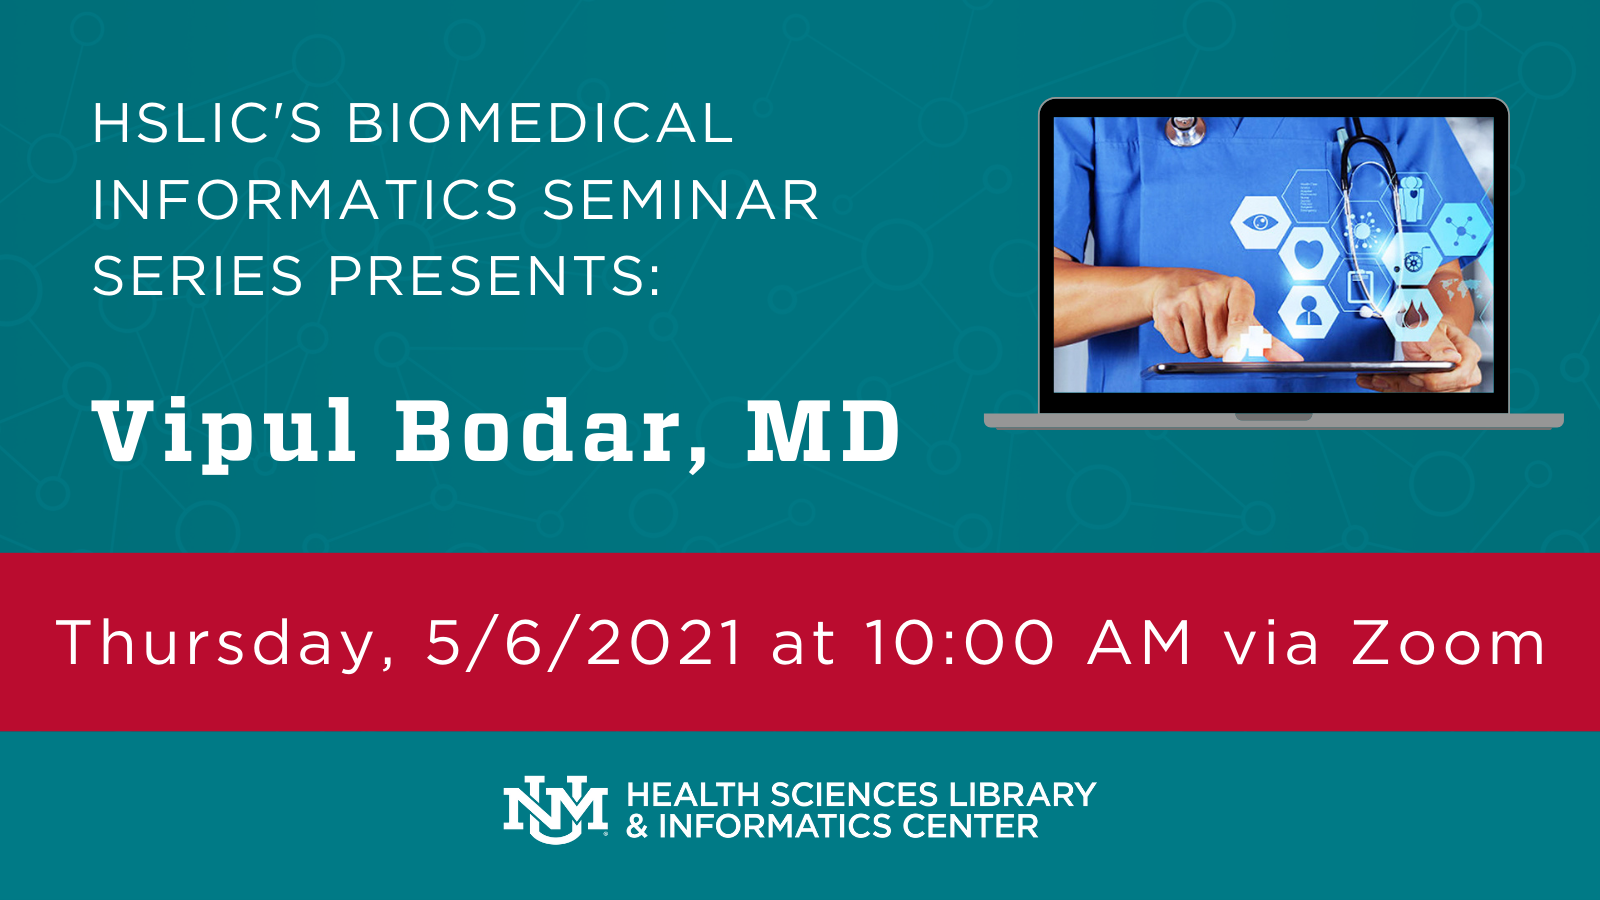 Image containing details of next Biomedical Informatics Seminar Series: Presenter - Vipul Bodar, MD; Scheduled for Thursday, 5/6/2021 at 10:00 AM via Zoom